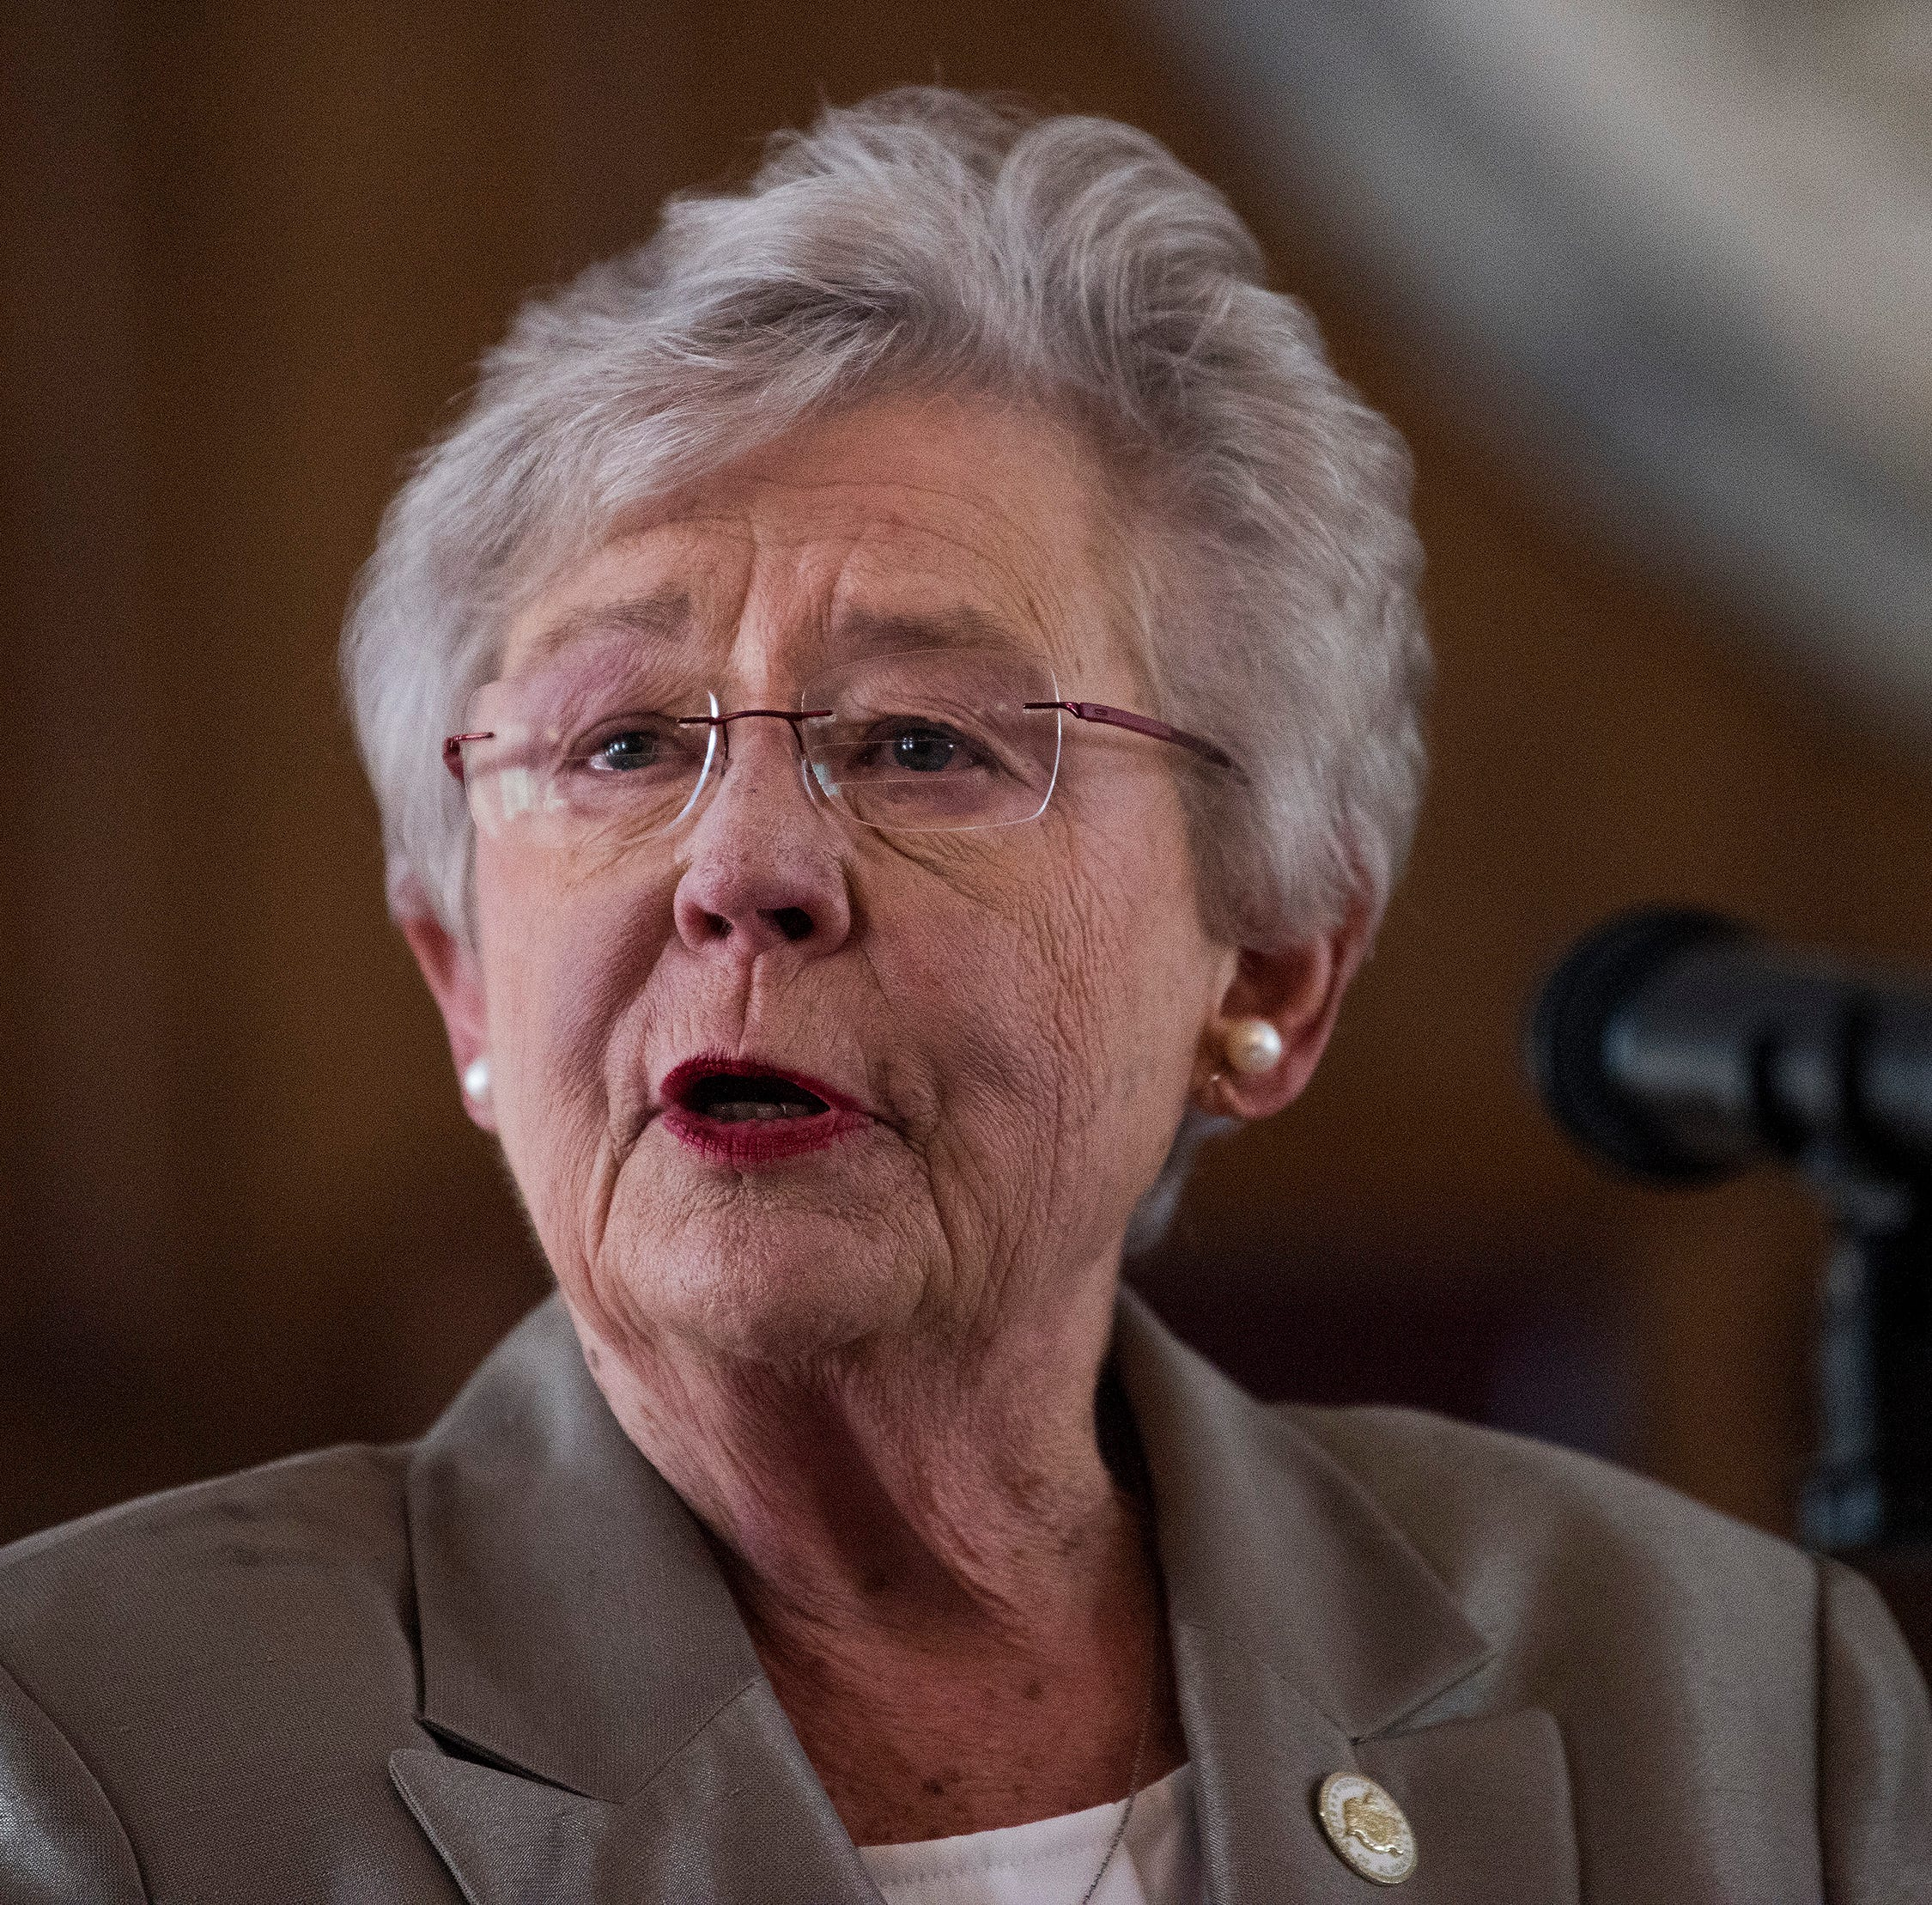 Governor Kay Ivey announces the Alabama Counts 2020 Census Committee during a a press conference at the Alabama Capitol Building in Montgomery, Ala. on Monday August 20, 2018.